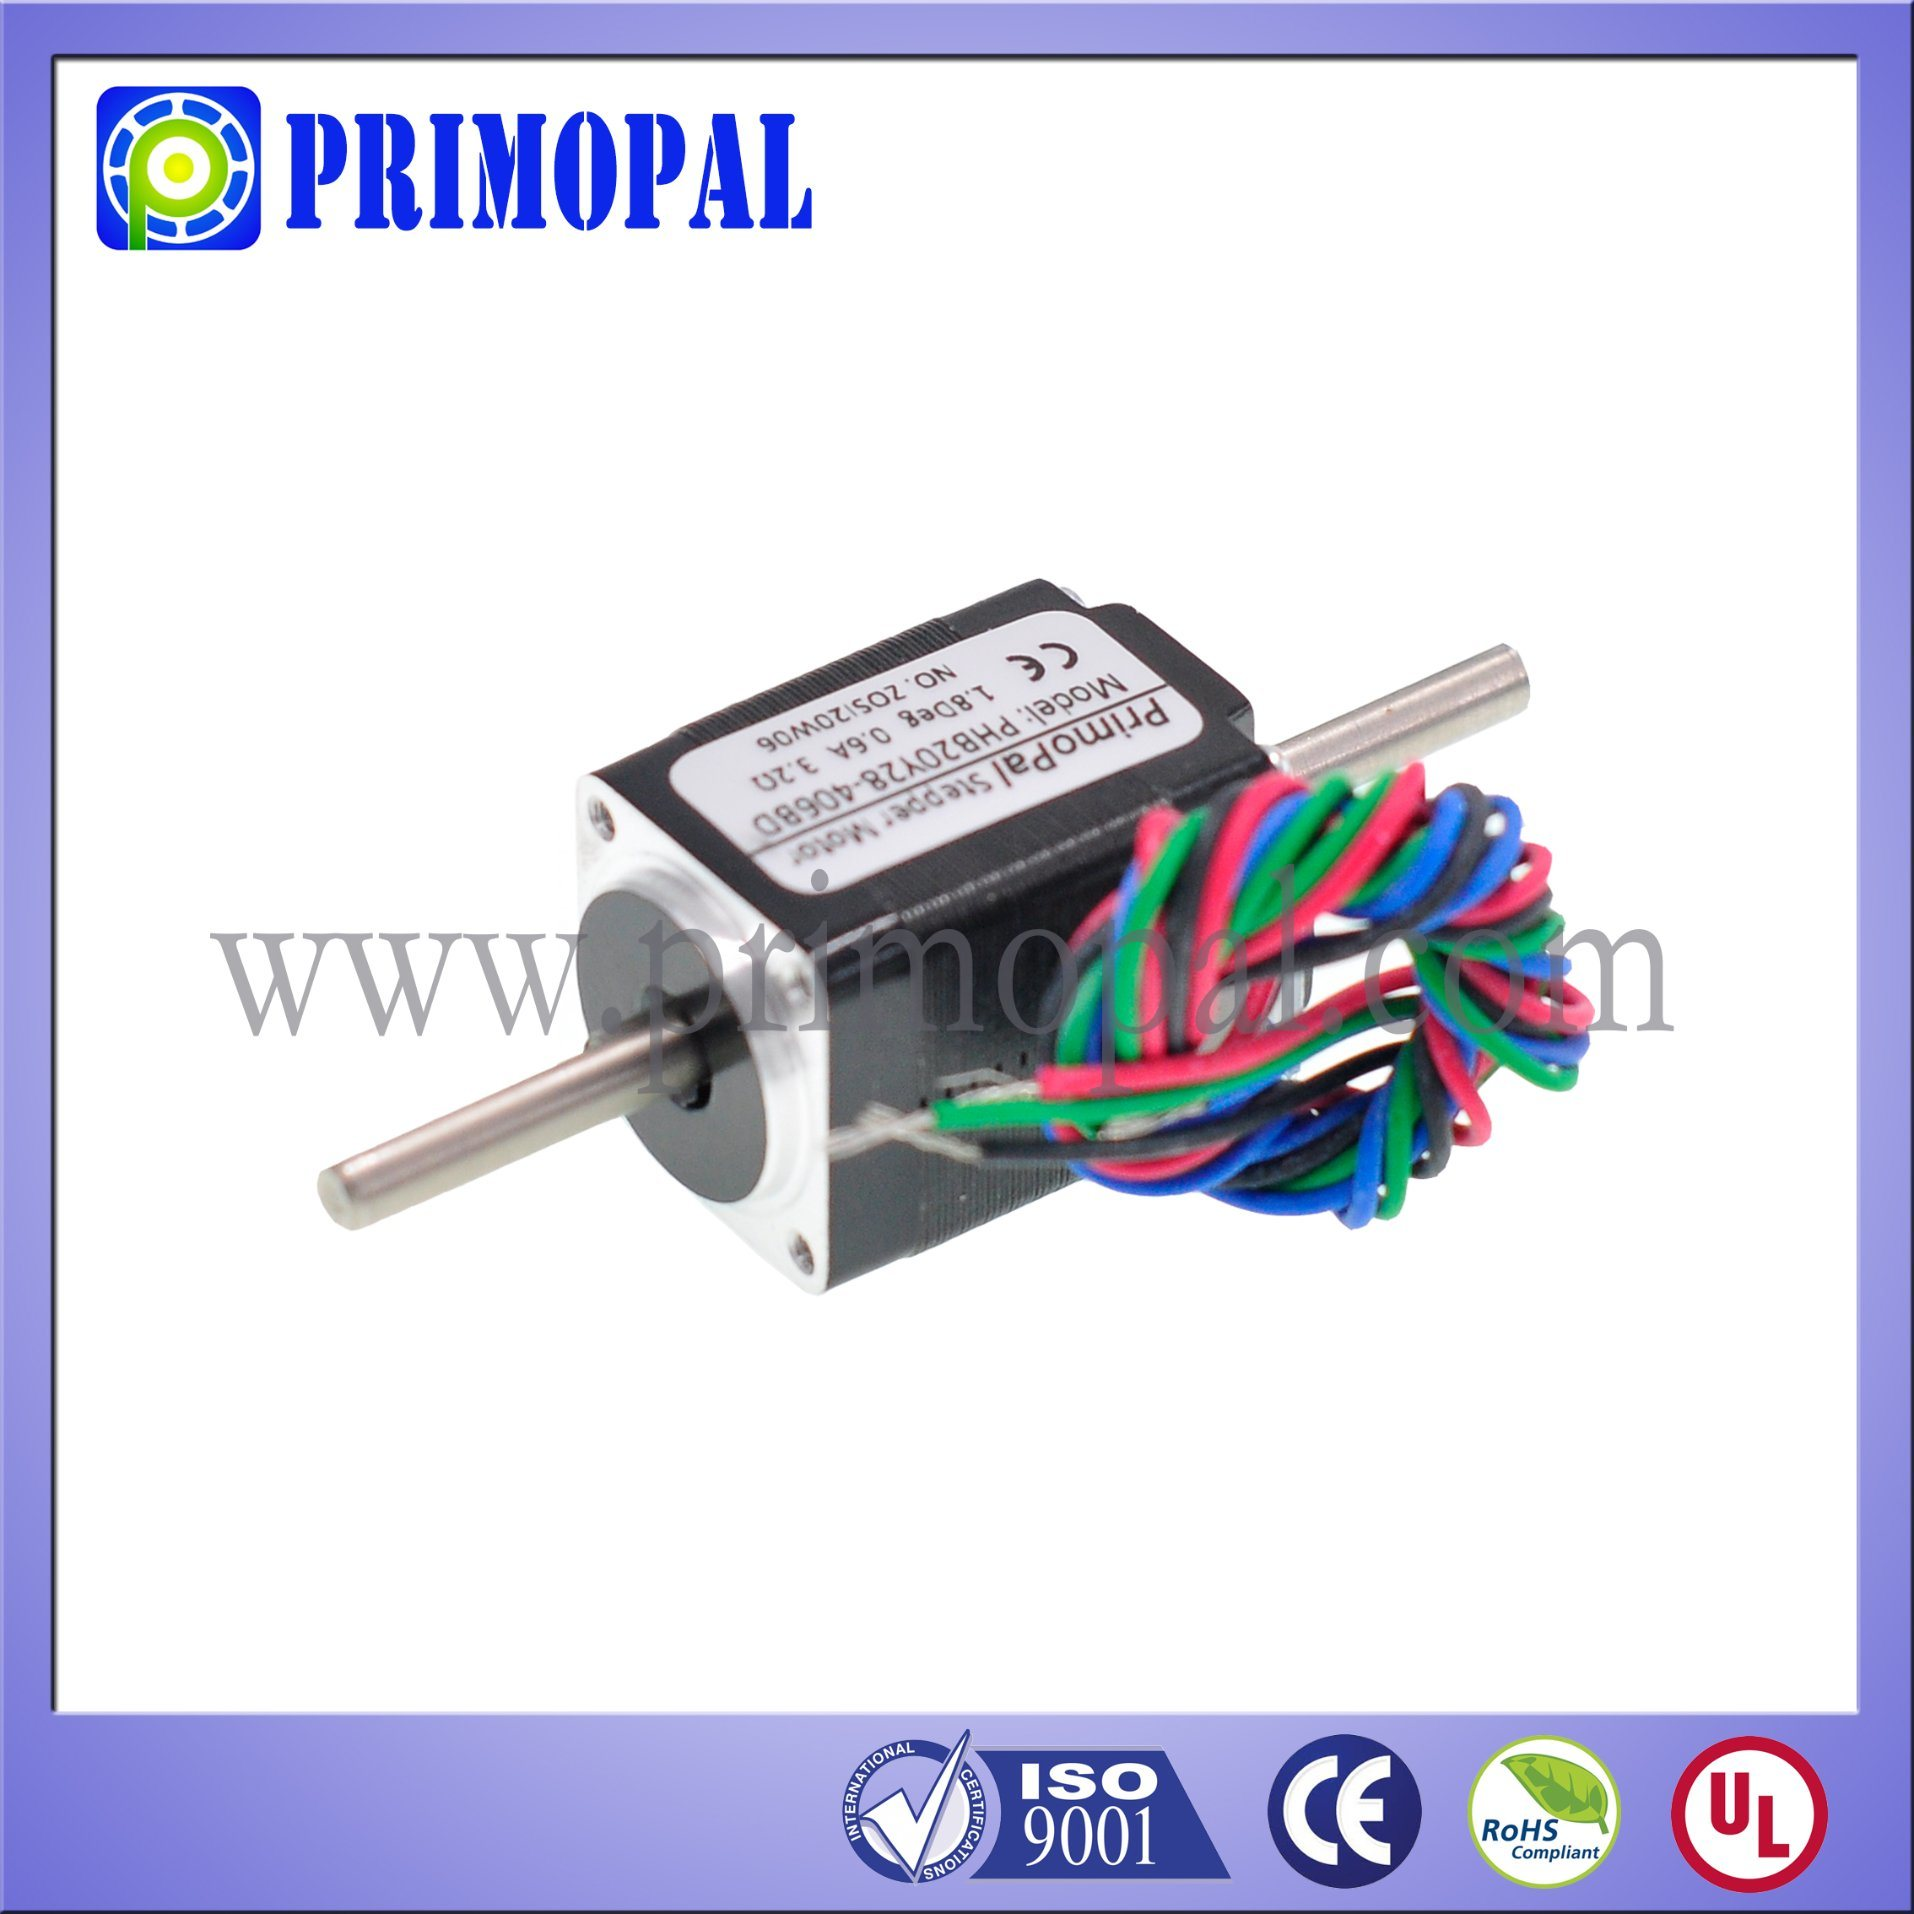 Miniature NEMA 8 Stepper Motor for CCTV System